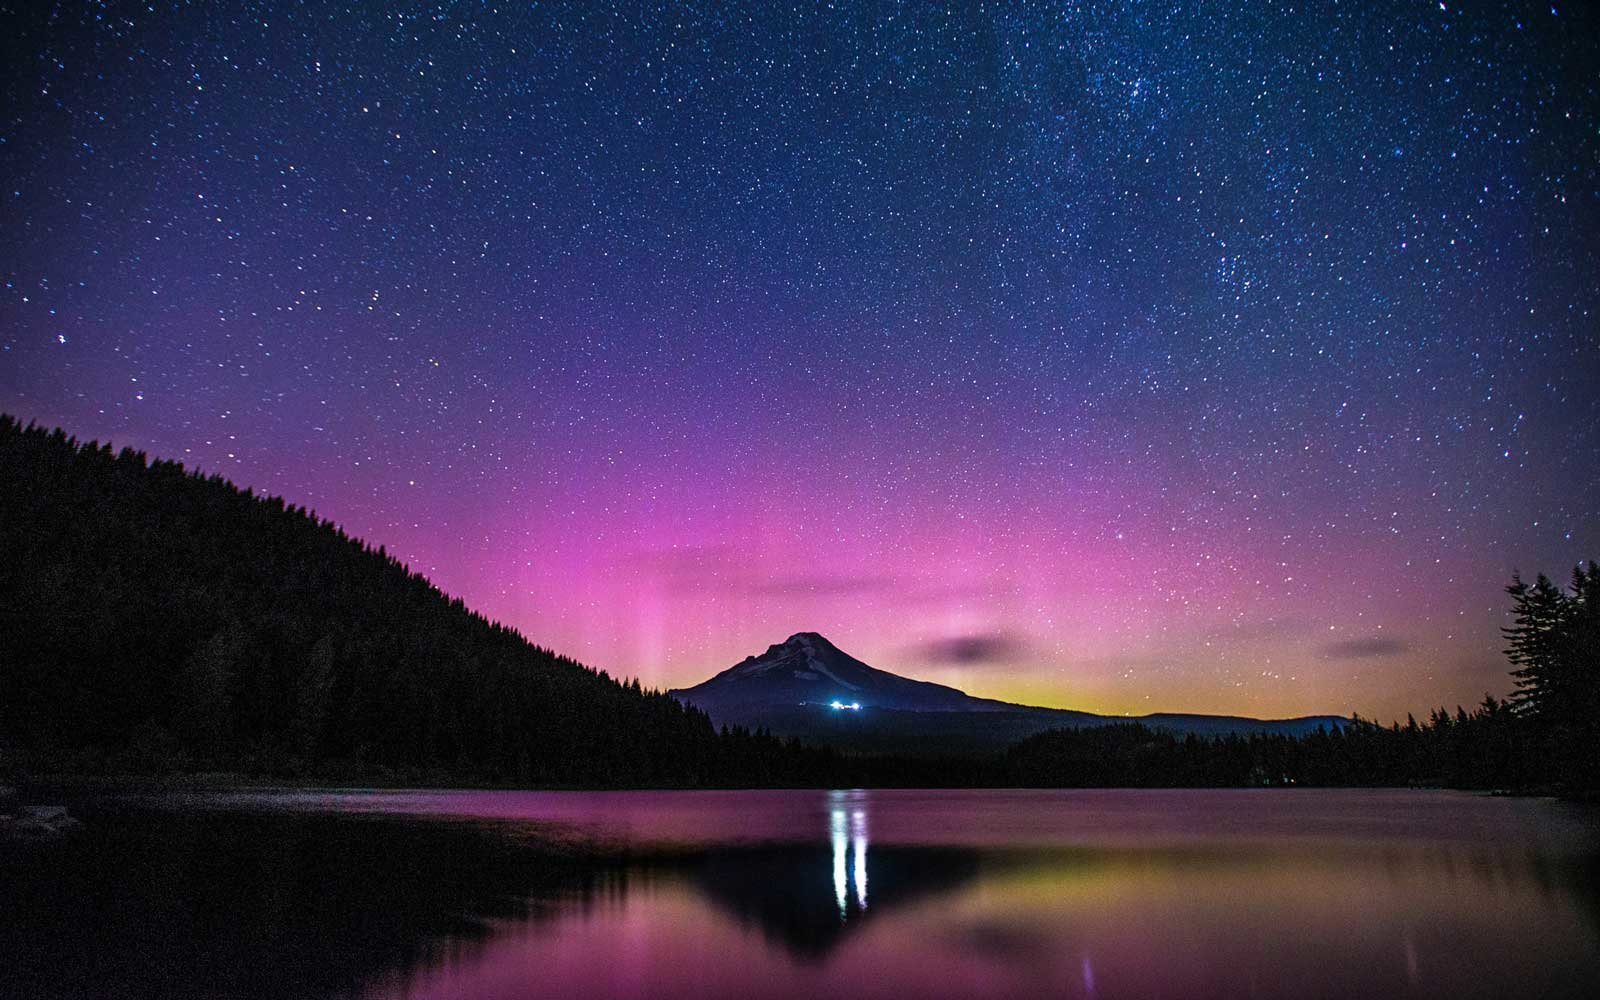 5 Places in the United States Where You Can Spot the Northern Lights